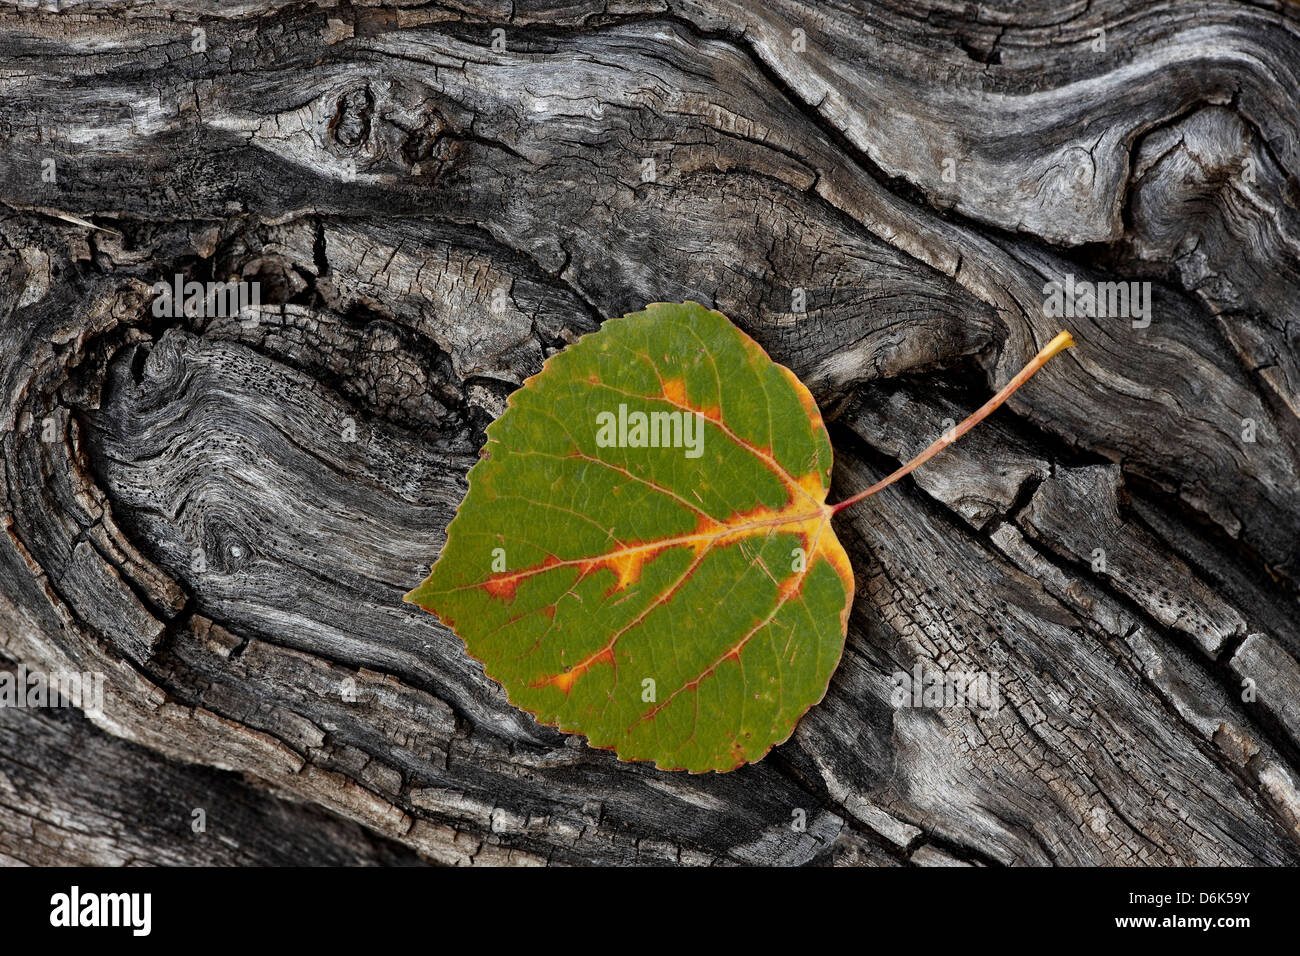 Aspen leaf turning red, orange, and yellow, Uncompahgre National Forest, Colorado, United States of America, North - Stock Image